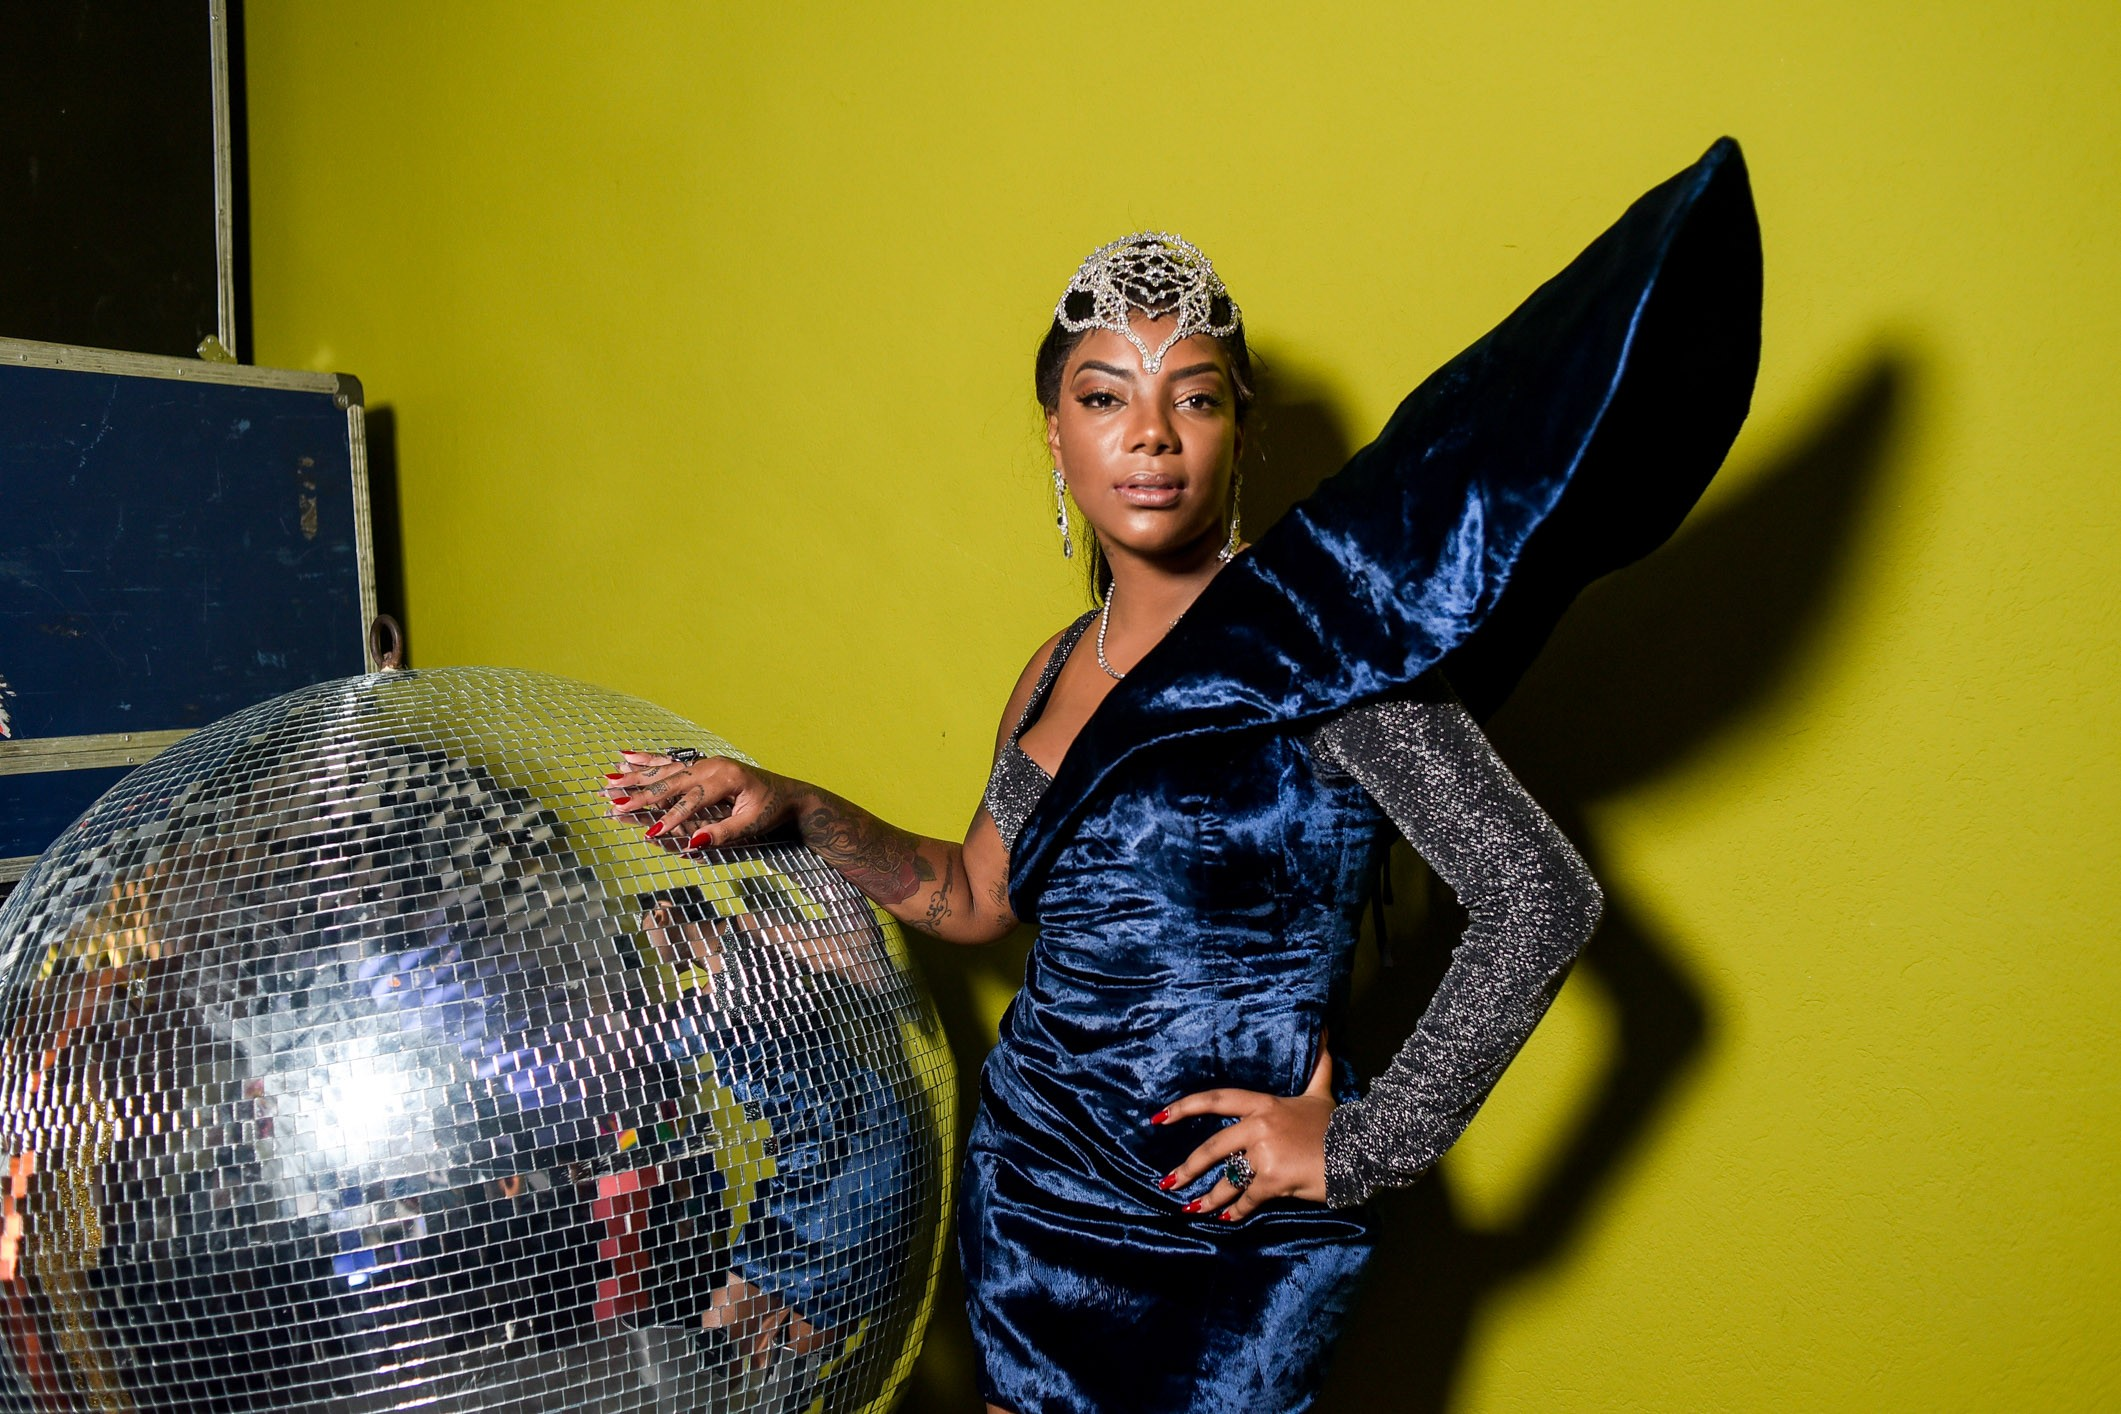 Ludmilla no Baile da Vogue 2018 (Foto: Arquivo Vogue)